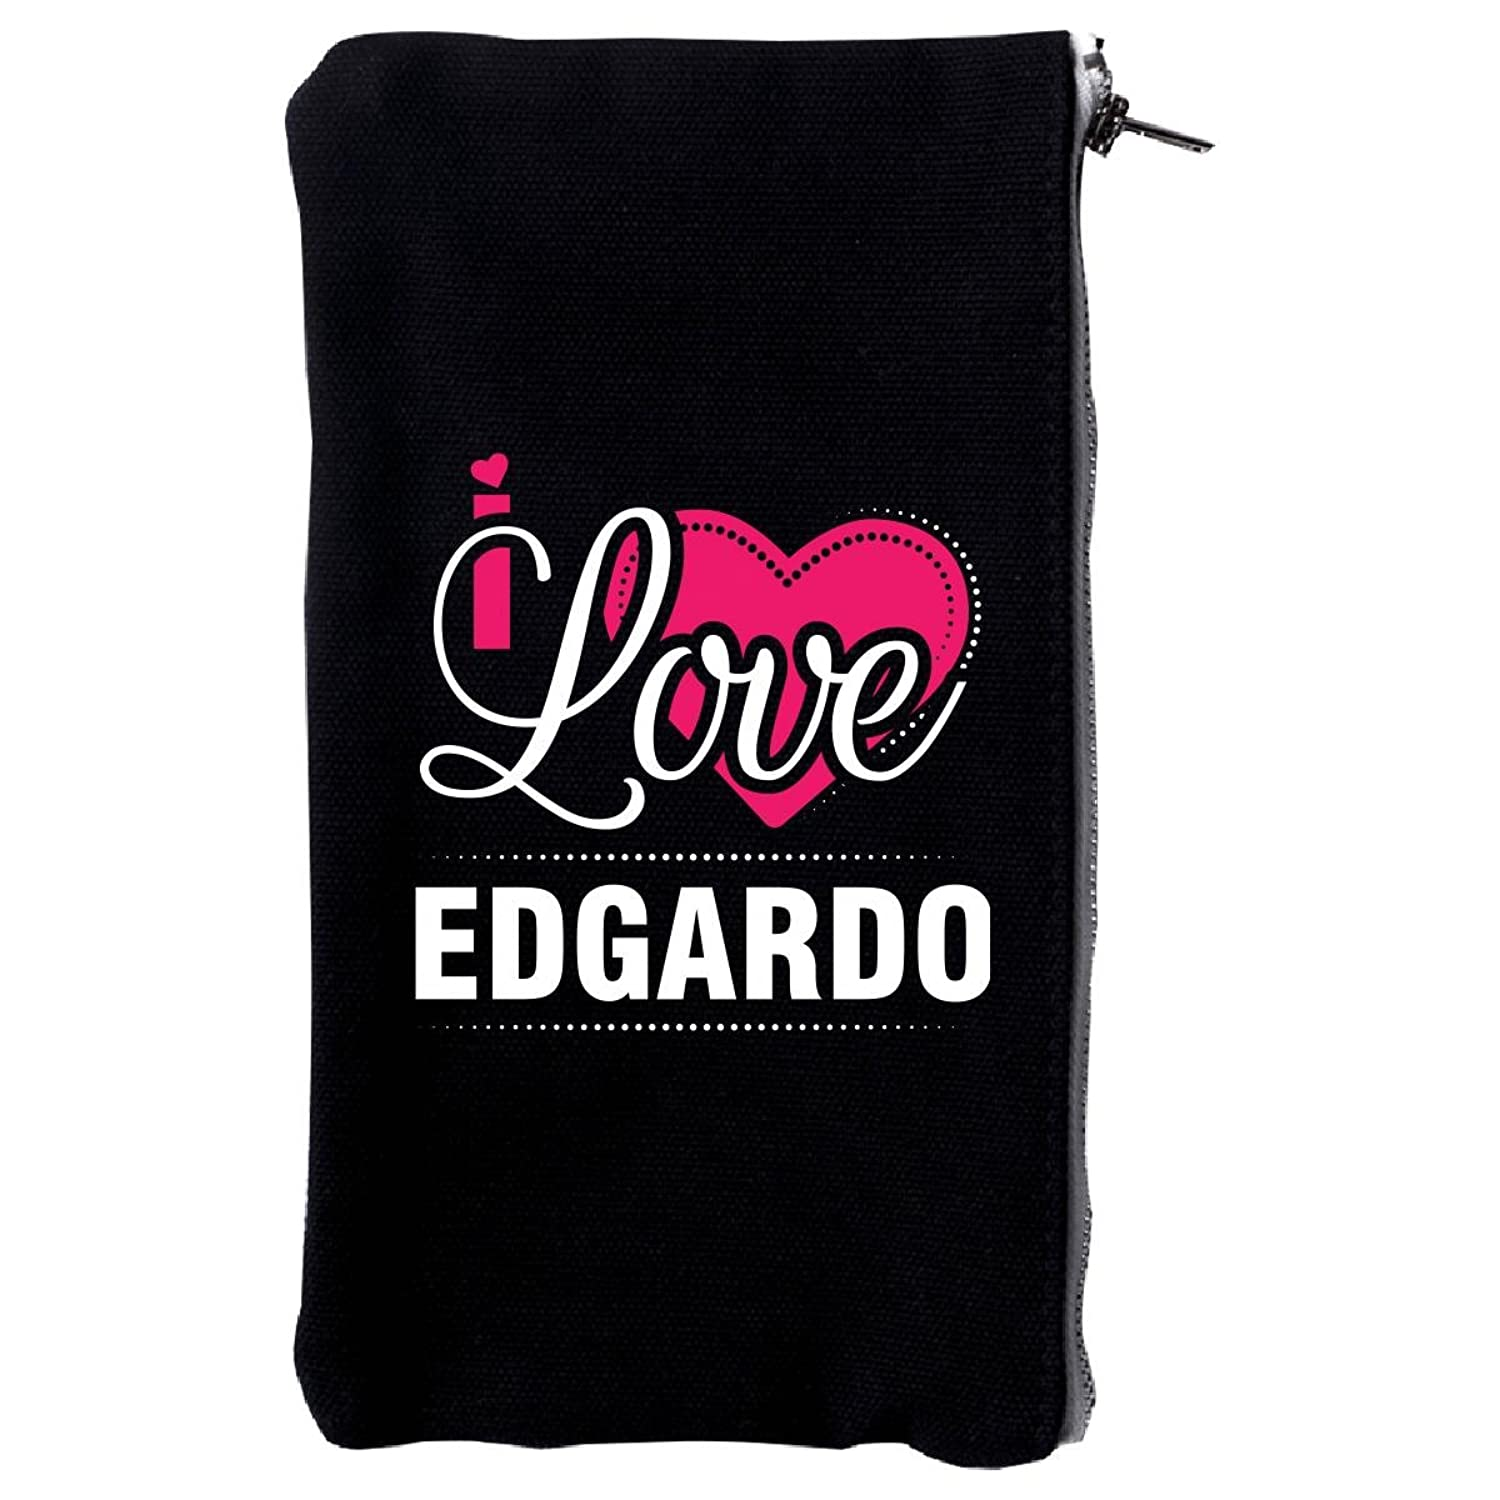 I Love Edgardo - Cool Gift For Edgardo From Girlfriend - Make Up Case